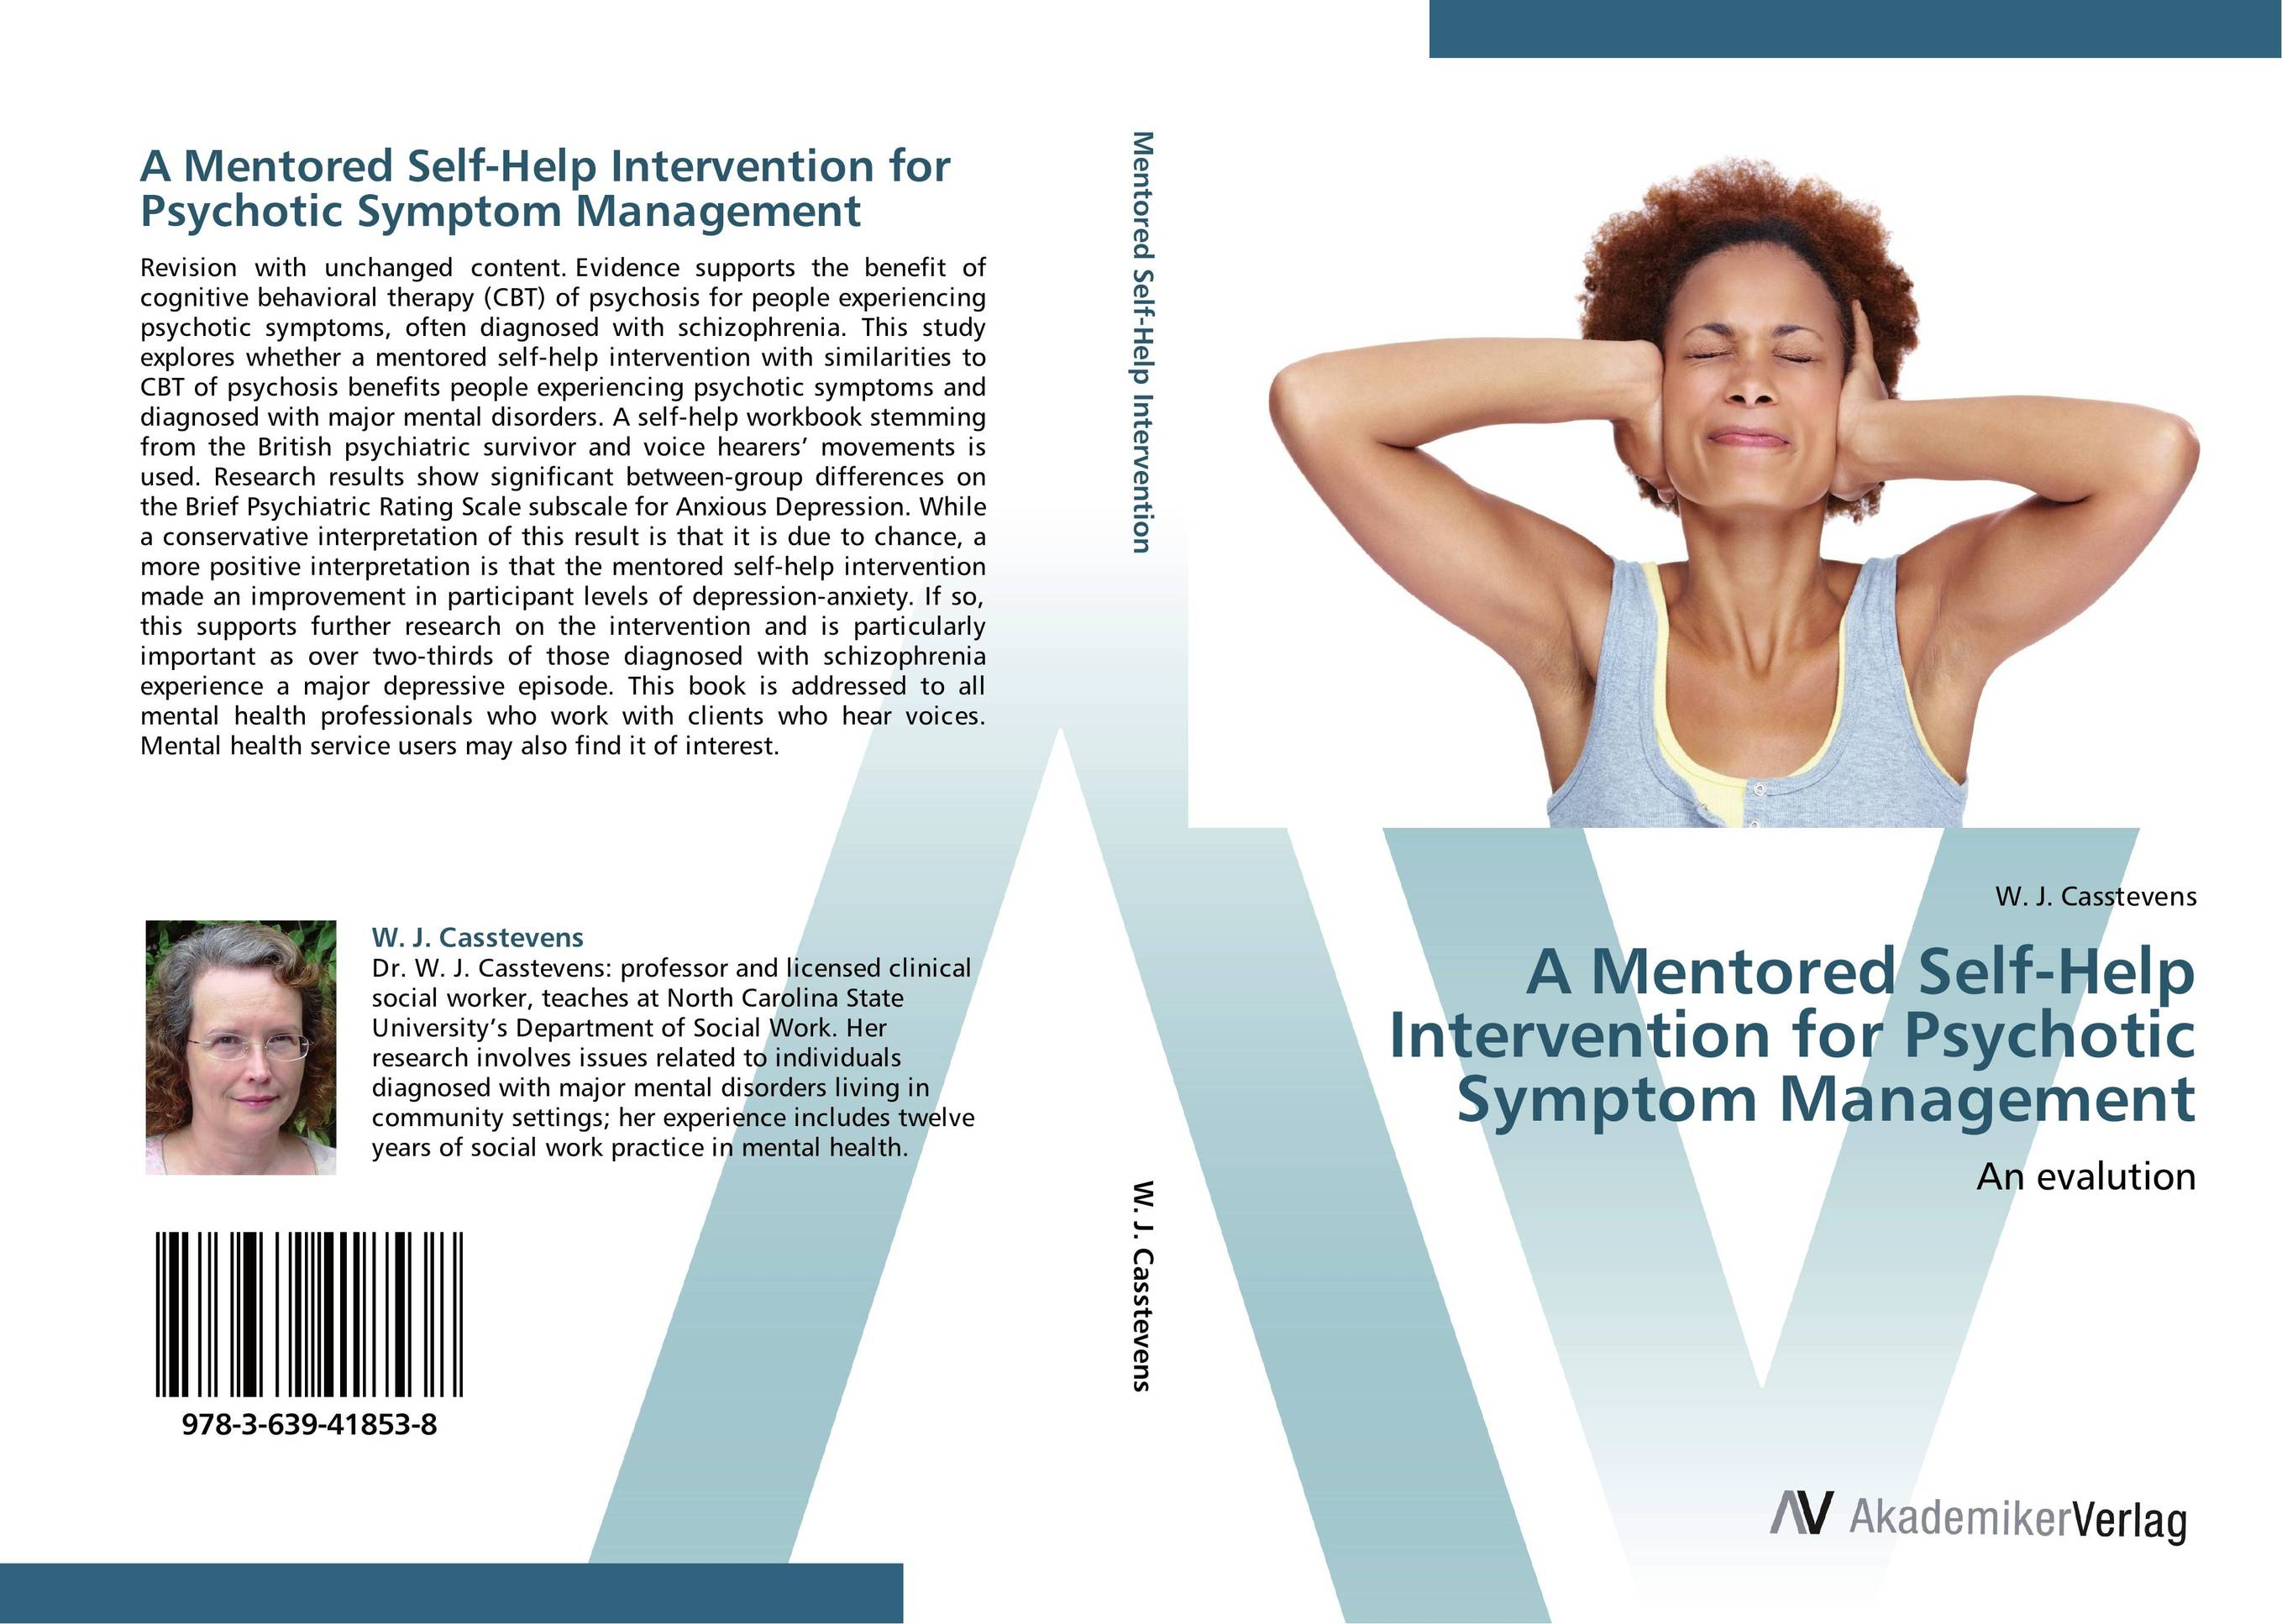 A Mentored Self-Help Intervention for Psychotic Symptom Management peter block stewardship choosing service over self interest